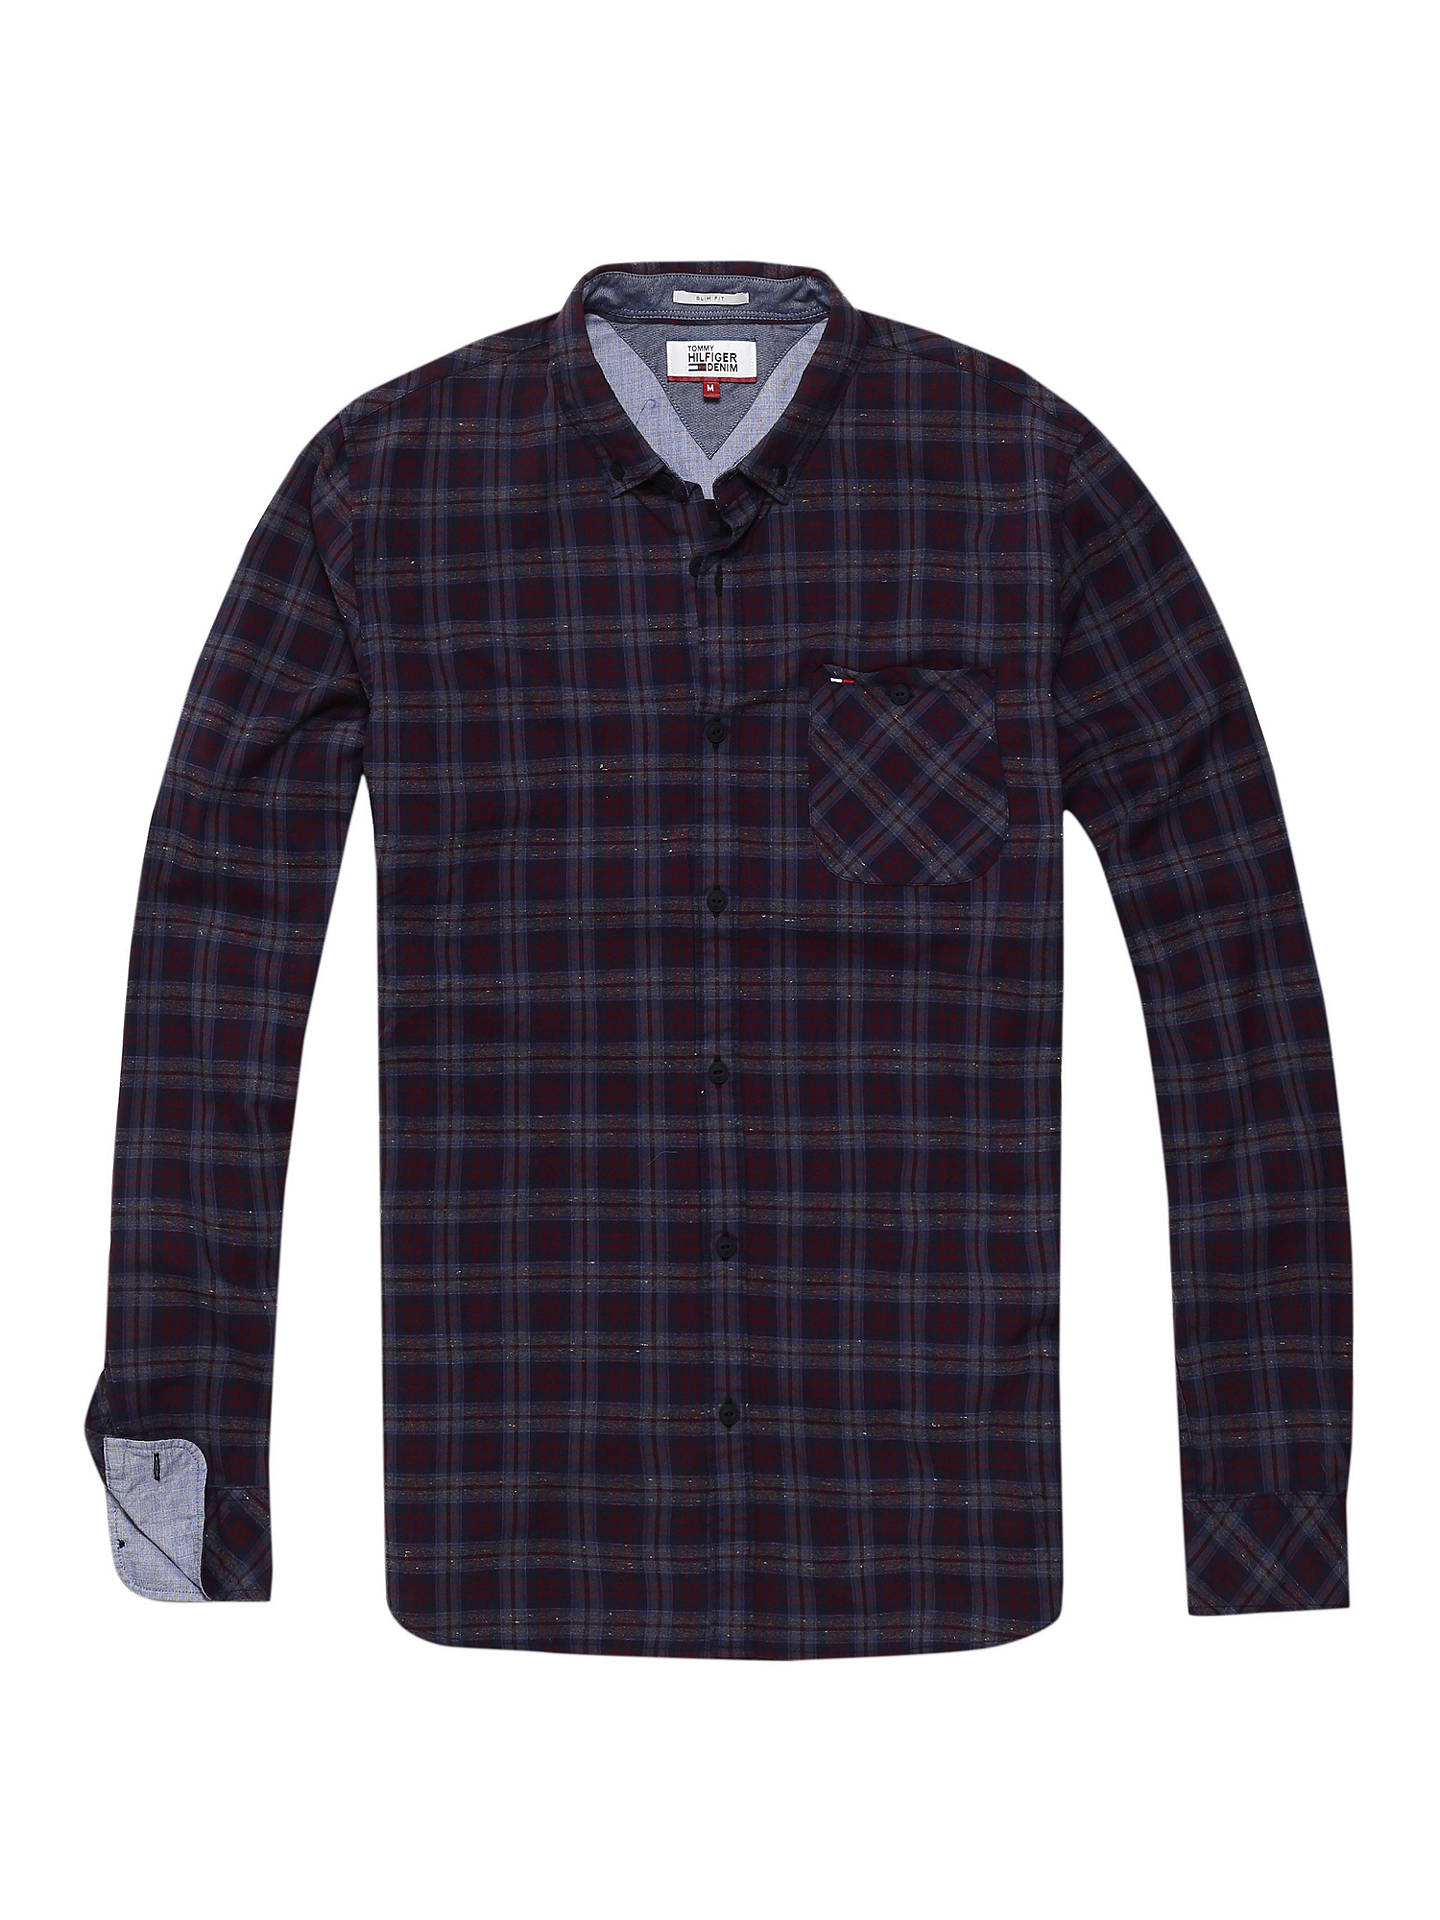 a4cf8c3b Buy Tommy Jeans Long Sleeve Checked Shirt, Indigo, S Online at  johnlewis.com ...